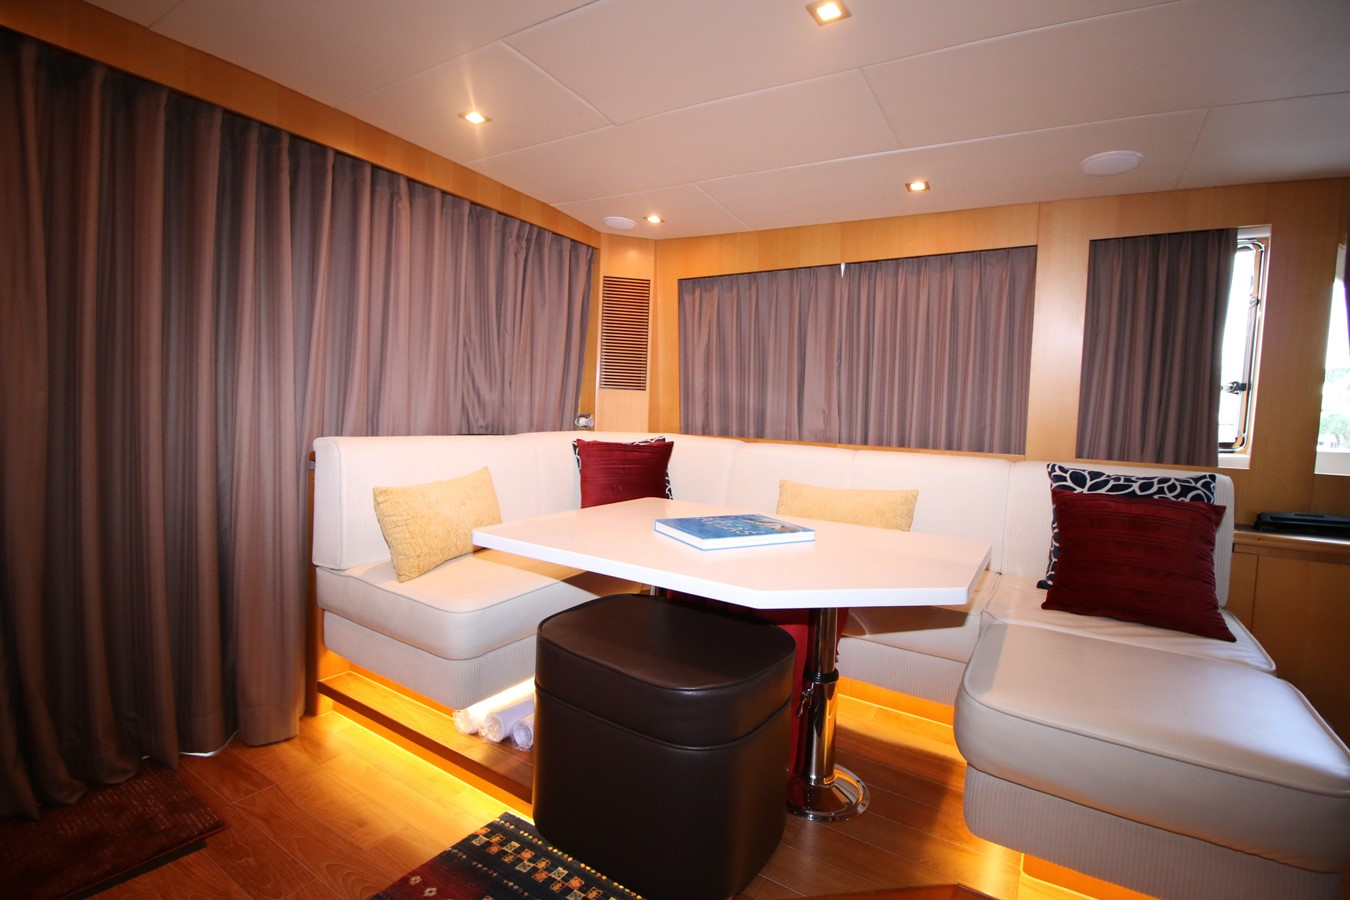 ENCLOSED BRIDGE SETTE 2014 HORIZON PC60 SKYLOUNGE Catamaran 2547249